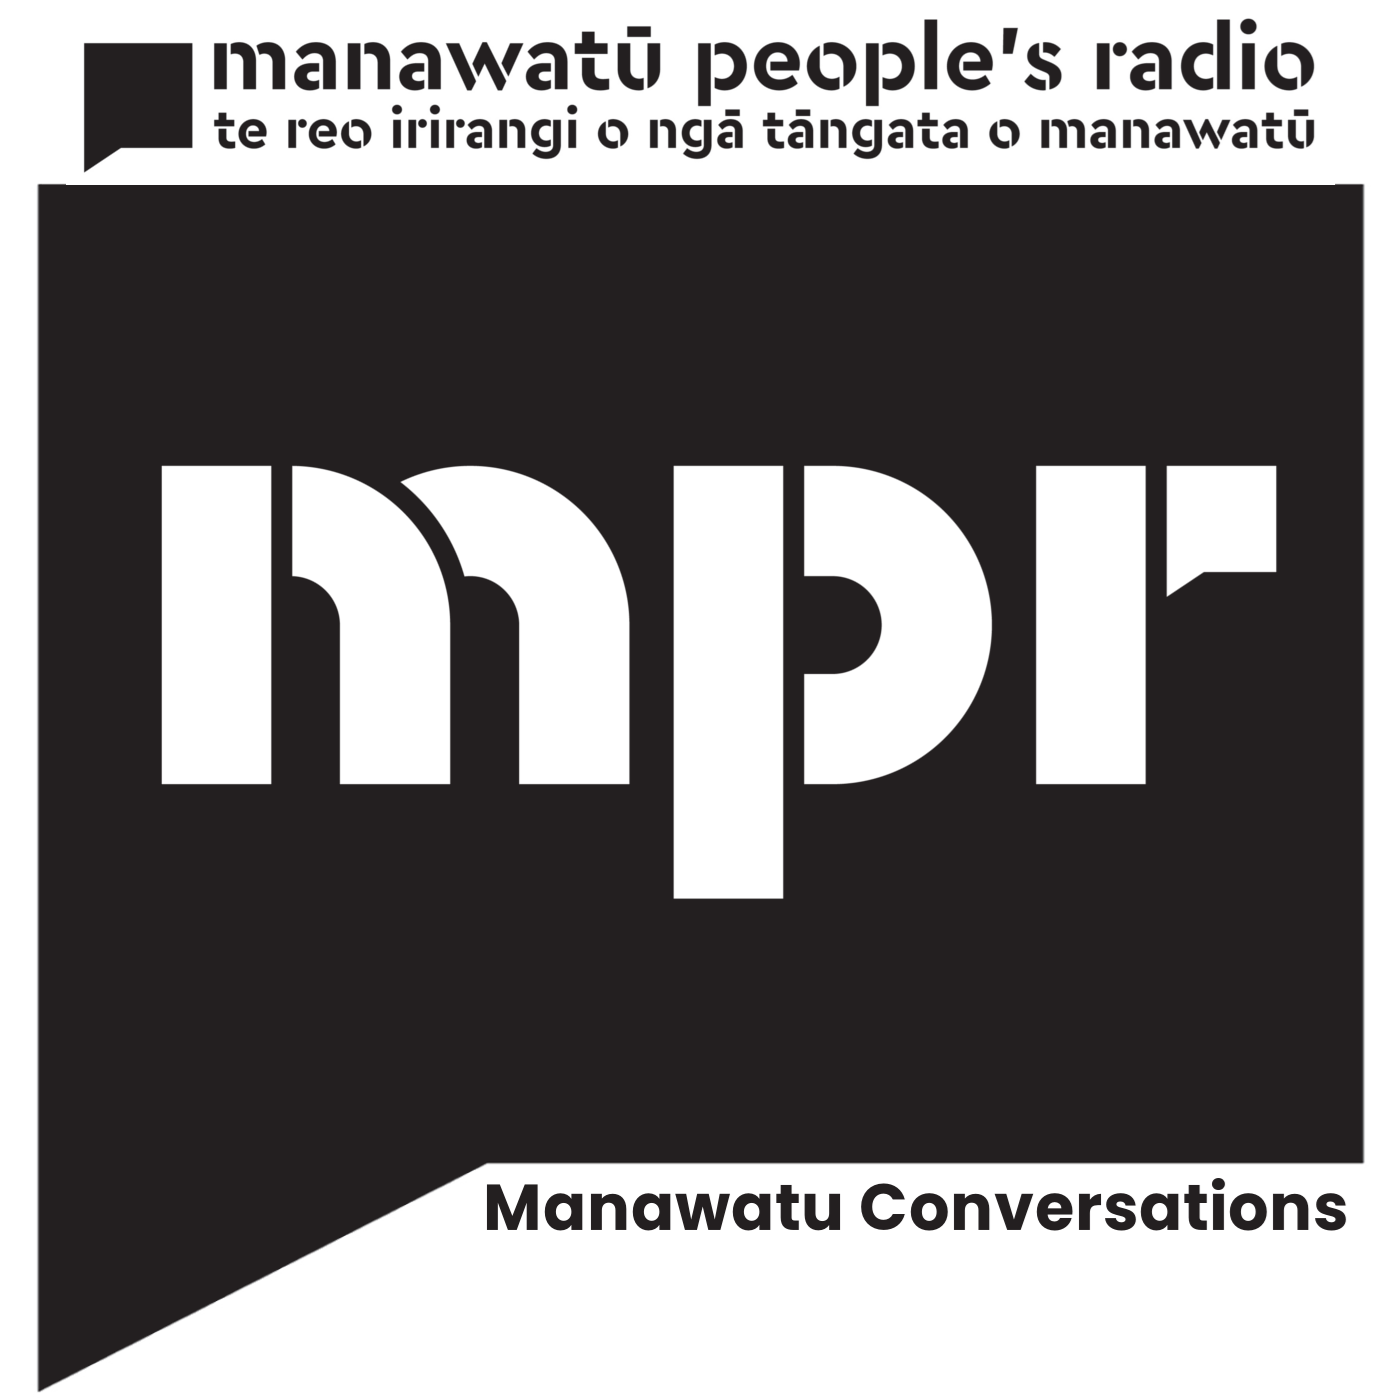 Manawatu Conversations-17-07-2018 - Episode 13